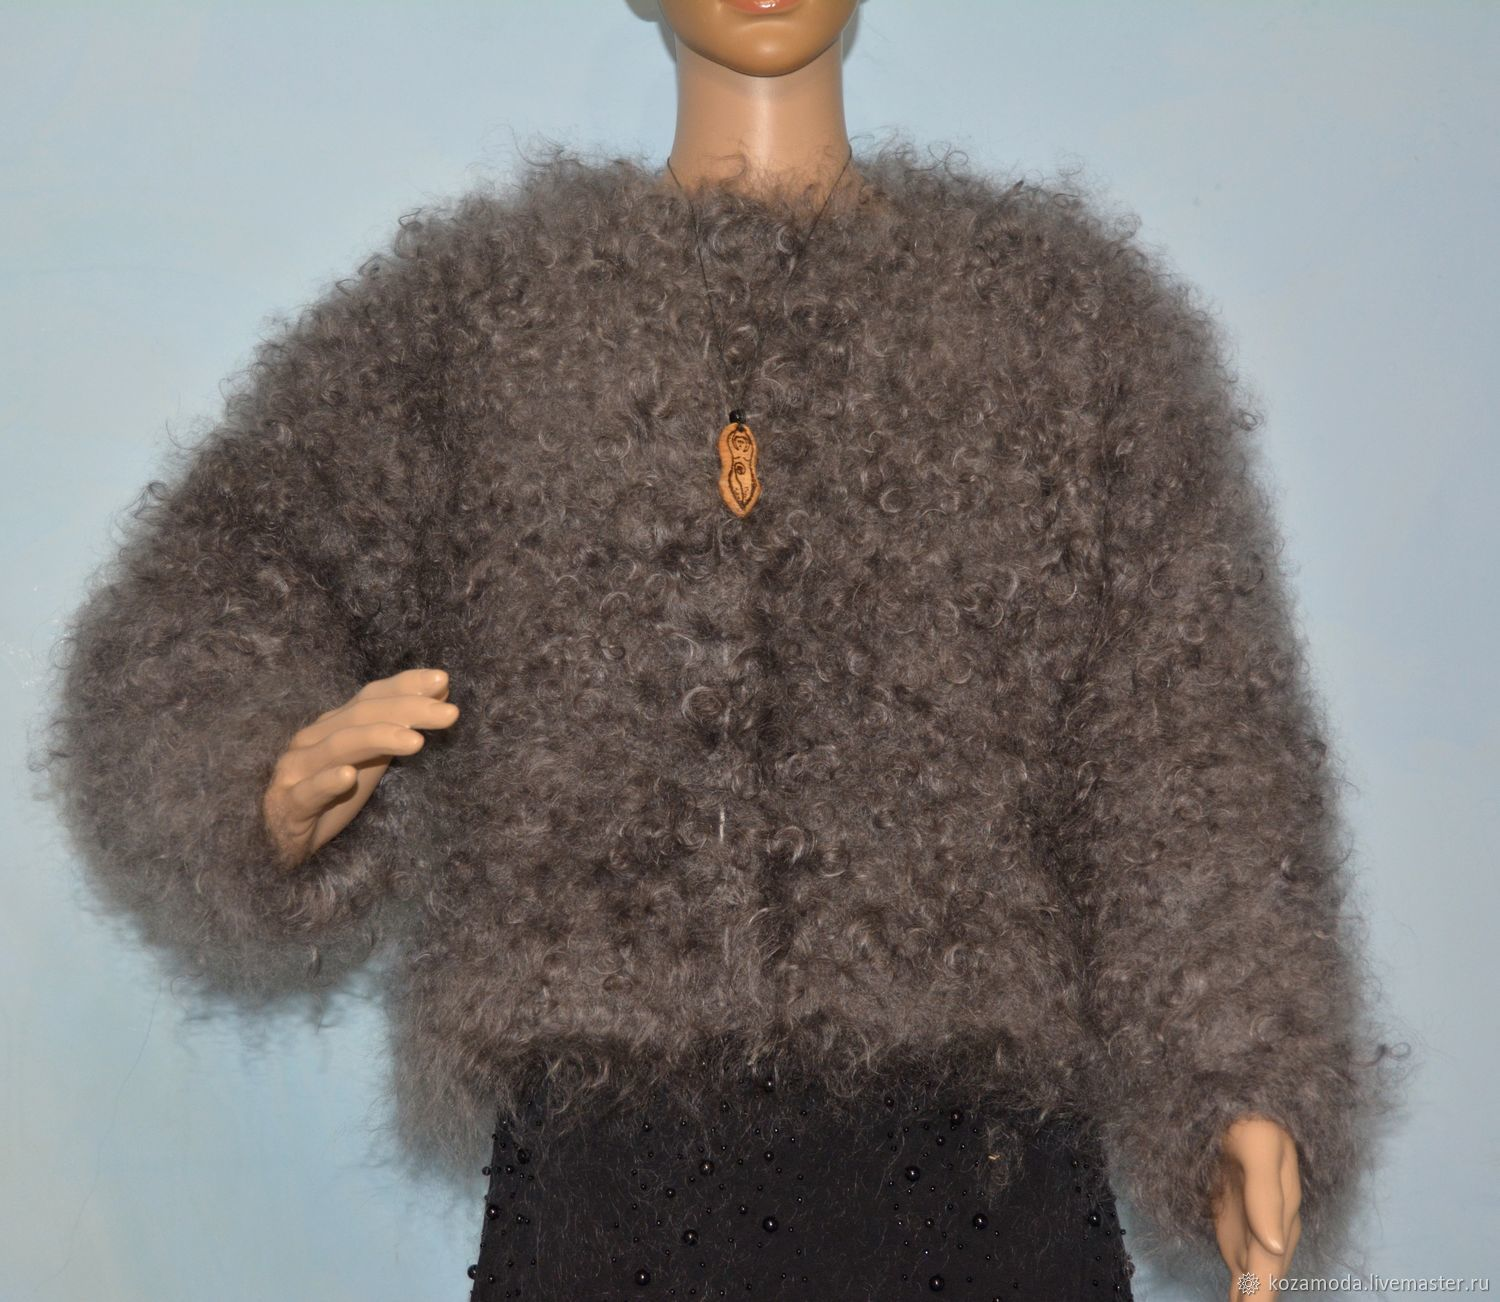 The puffer jacket is knitted in the style of Coco Chanel 100% goat down, Suit Jackets, Urjupinsk,  Фото №1